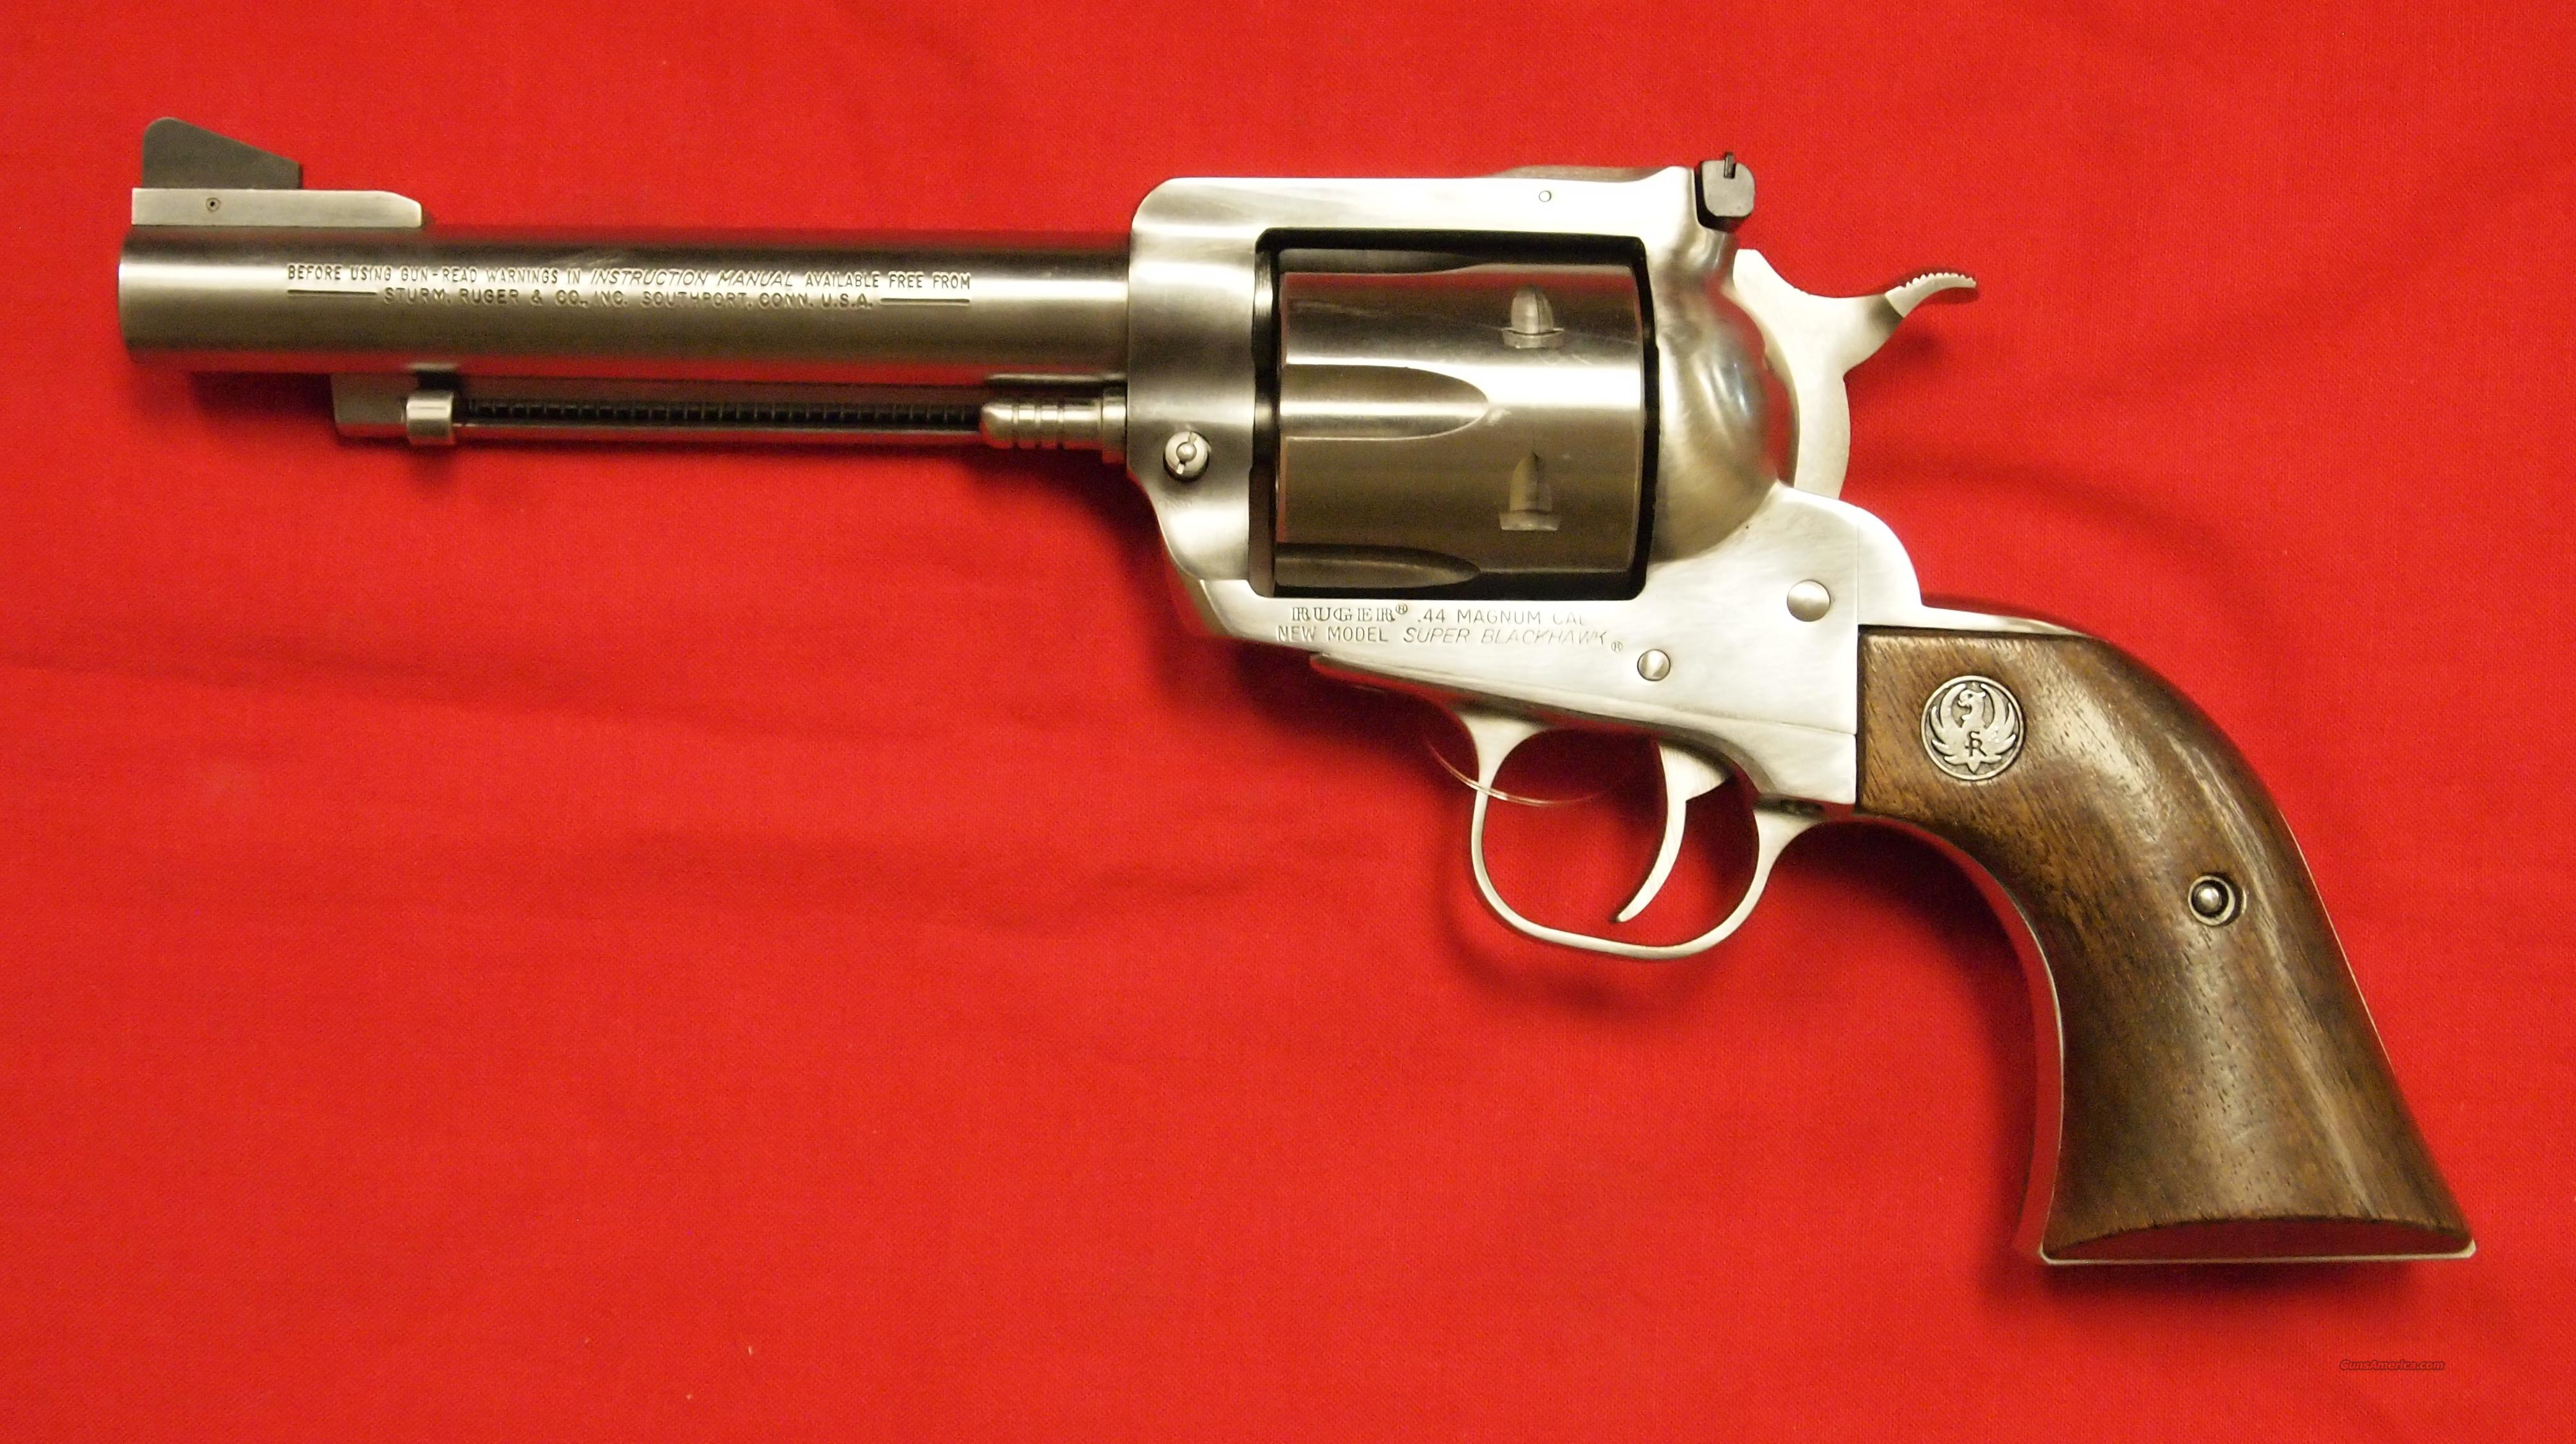 Ruger Super Blackhawk SA/NM .44 Magnum  Guns > Pistols > Ruger Single Action Revolvers > Single Six Type